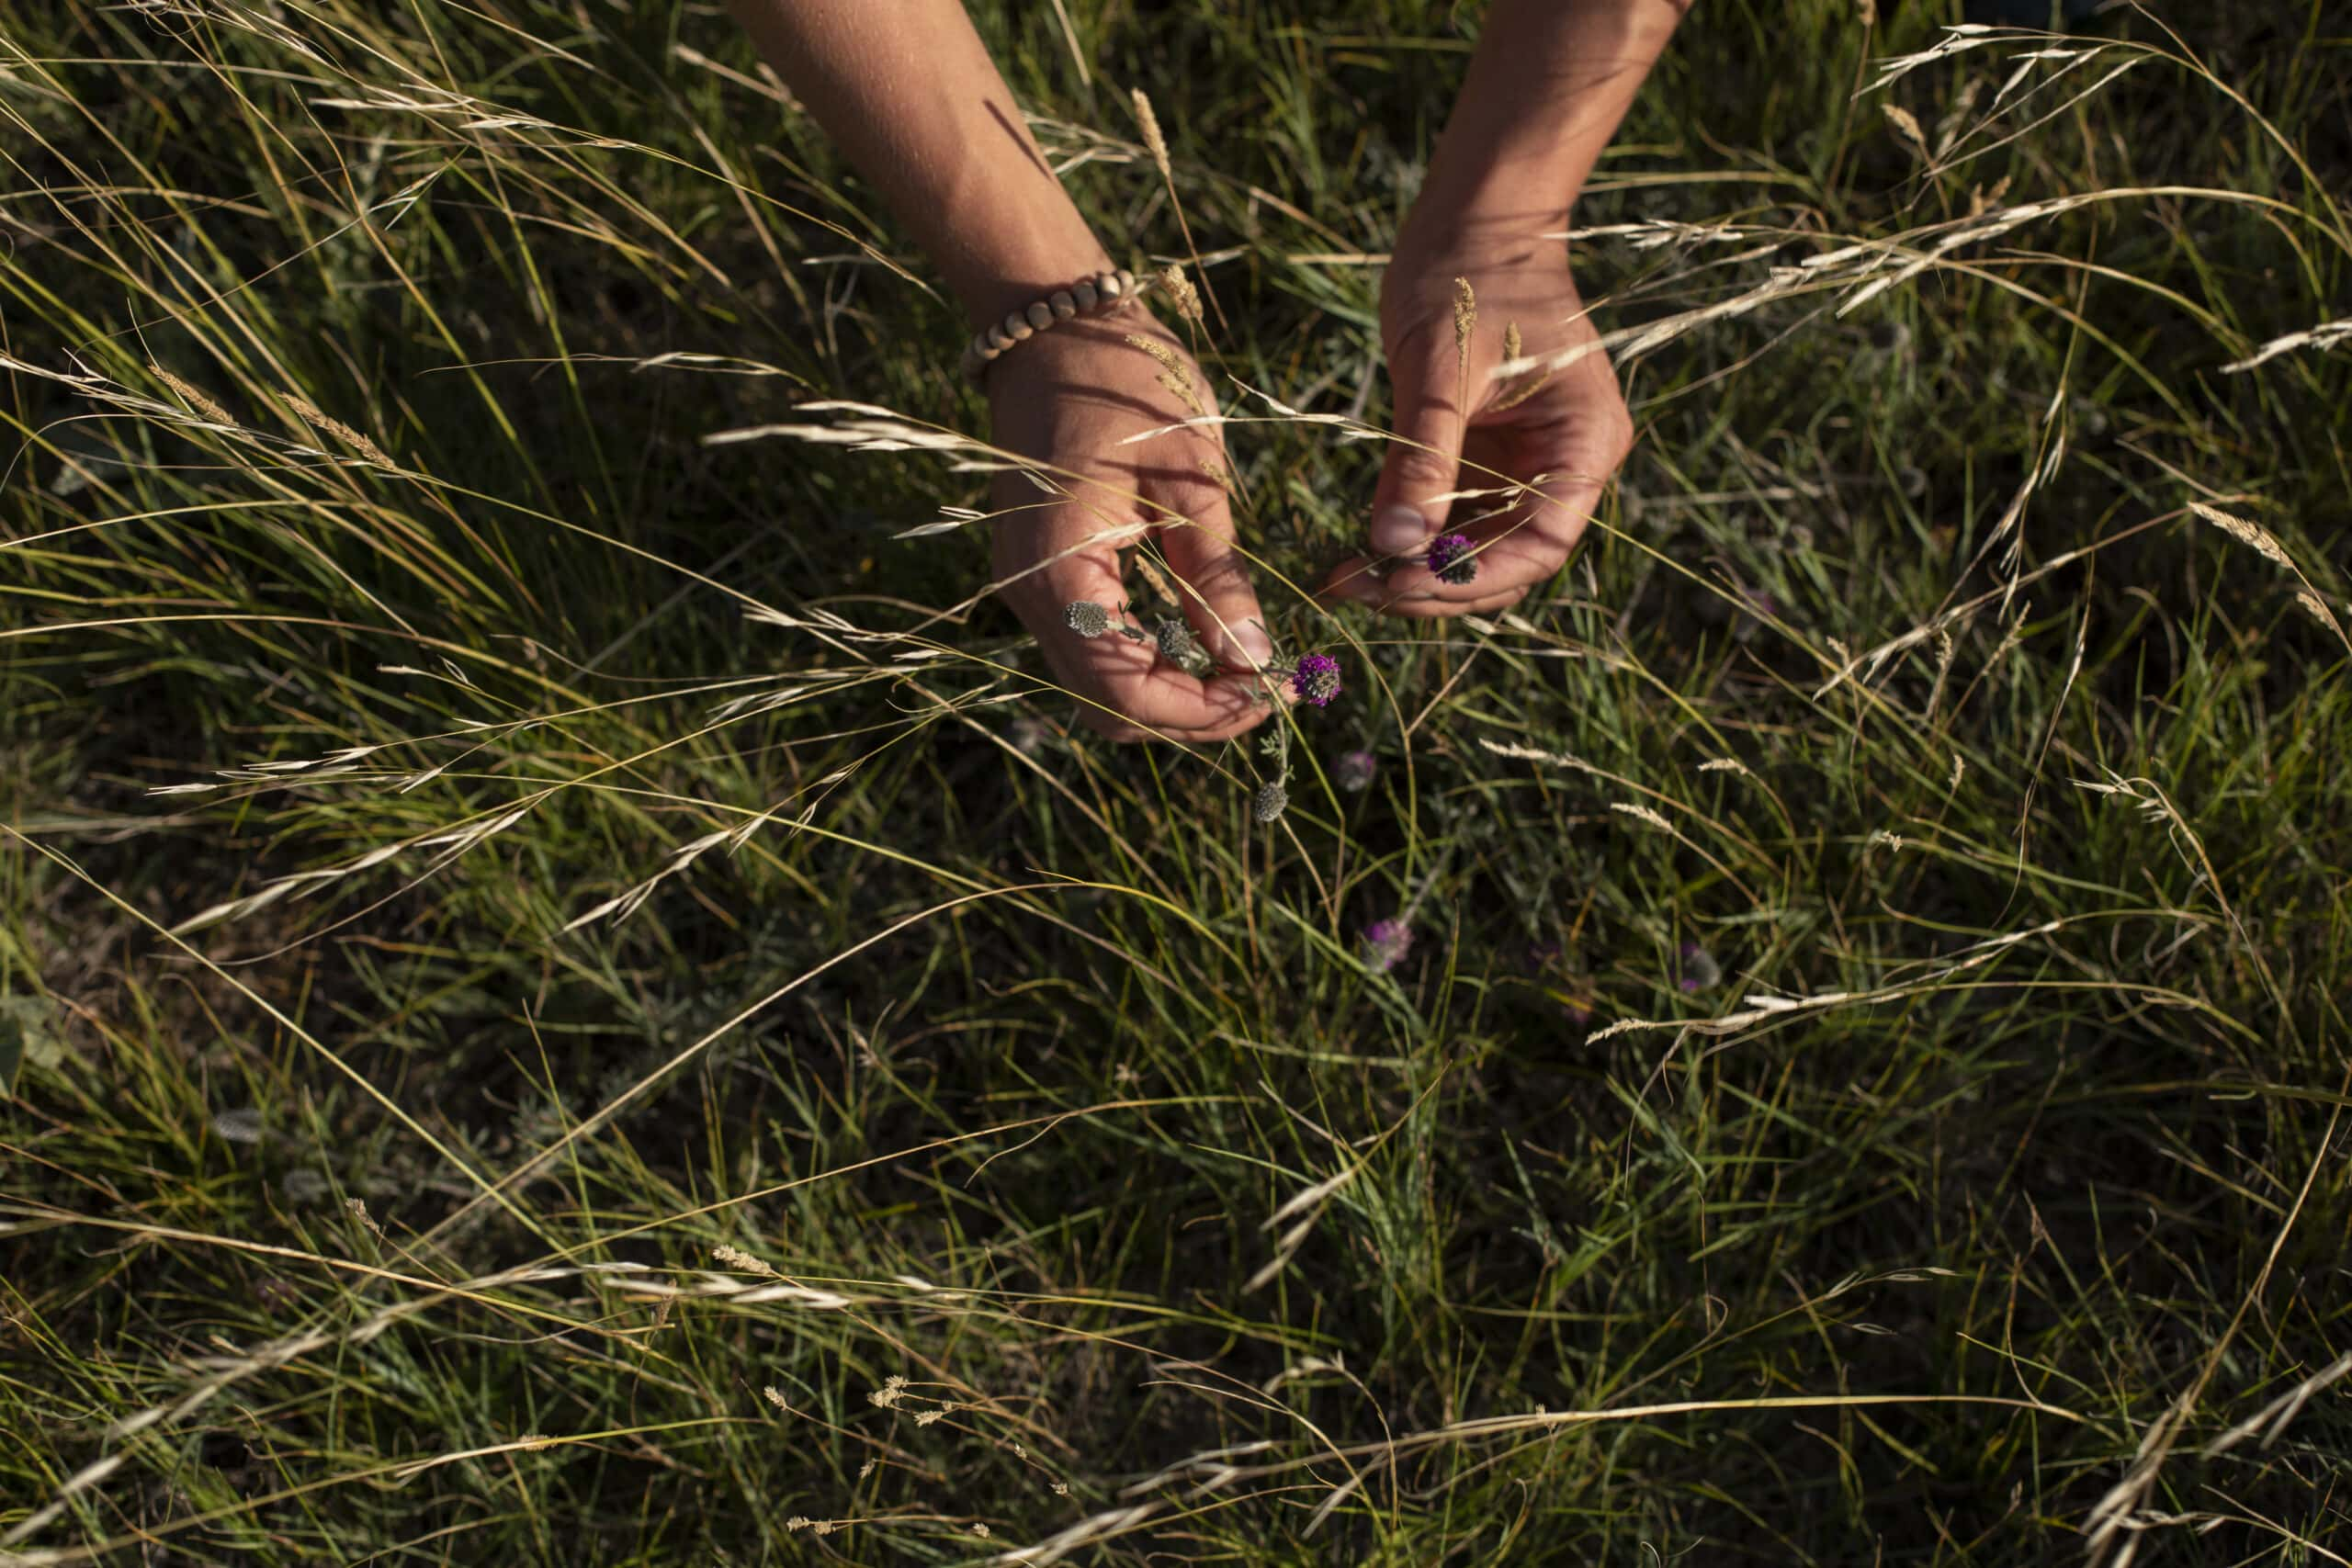 Federal election 2021: photo of person holding Purple Prairie Clover in prairie grasslands, featured in Arno Kopecky op-ed on voting